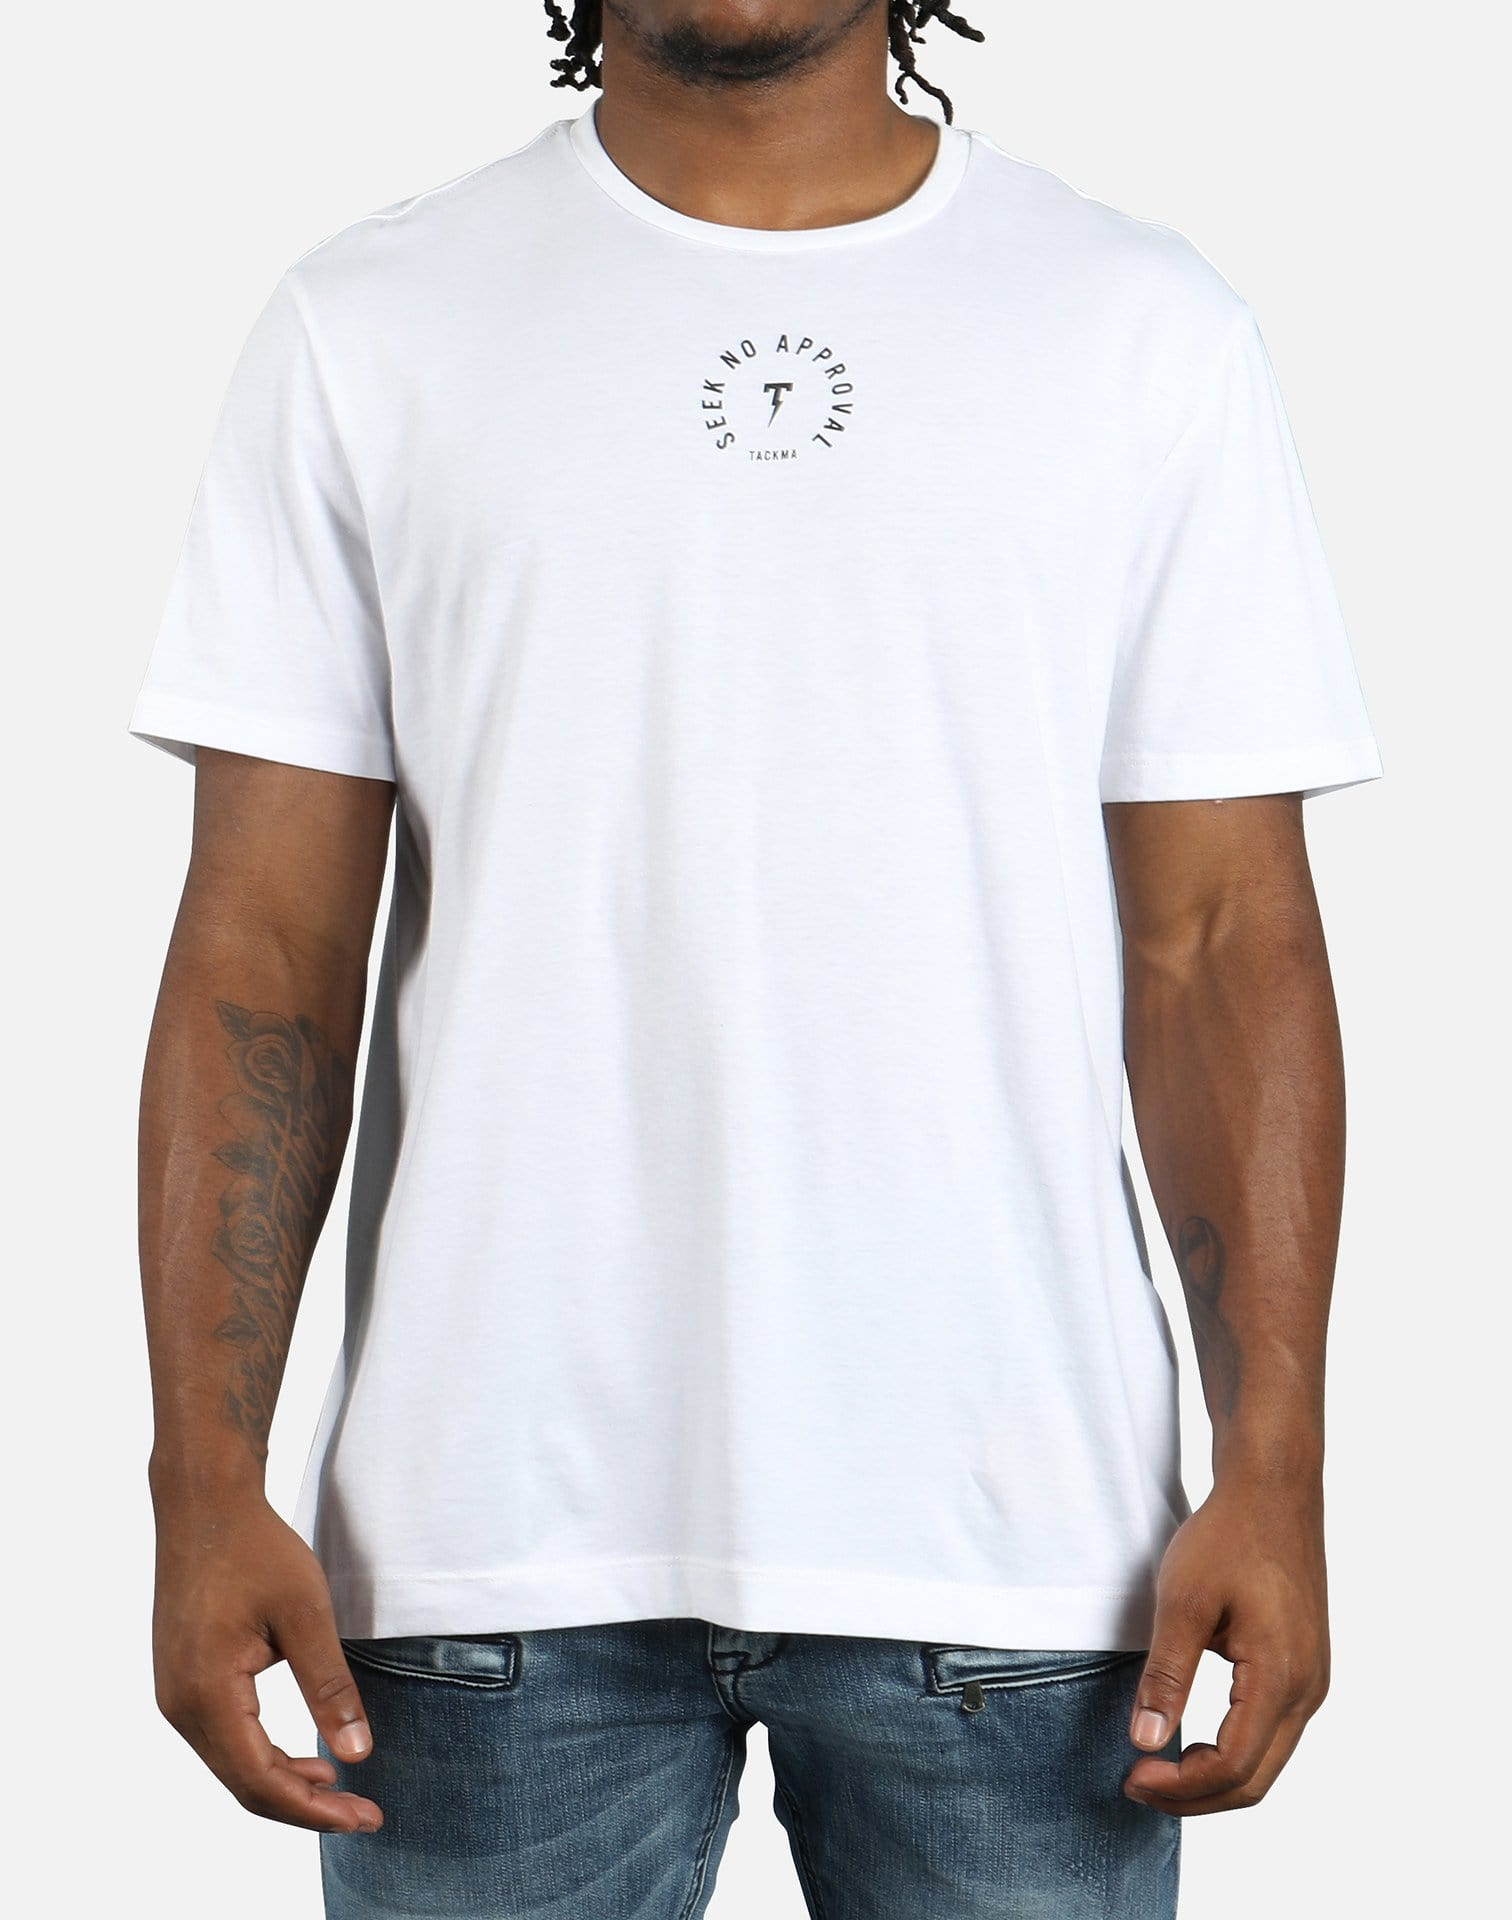 Tackma One Eight Life Tee